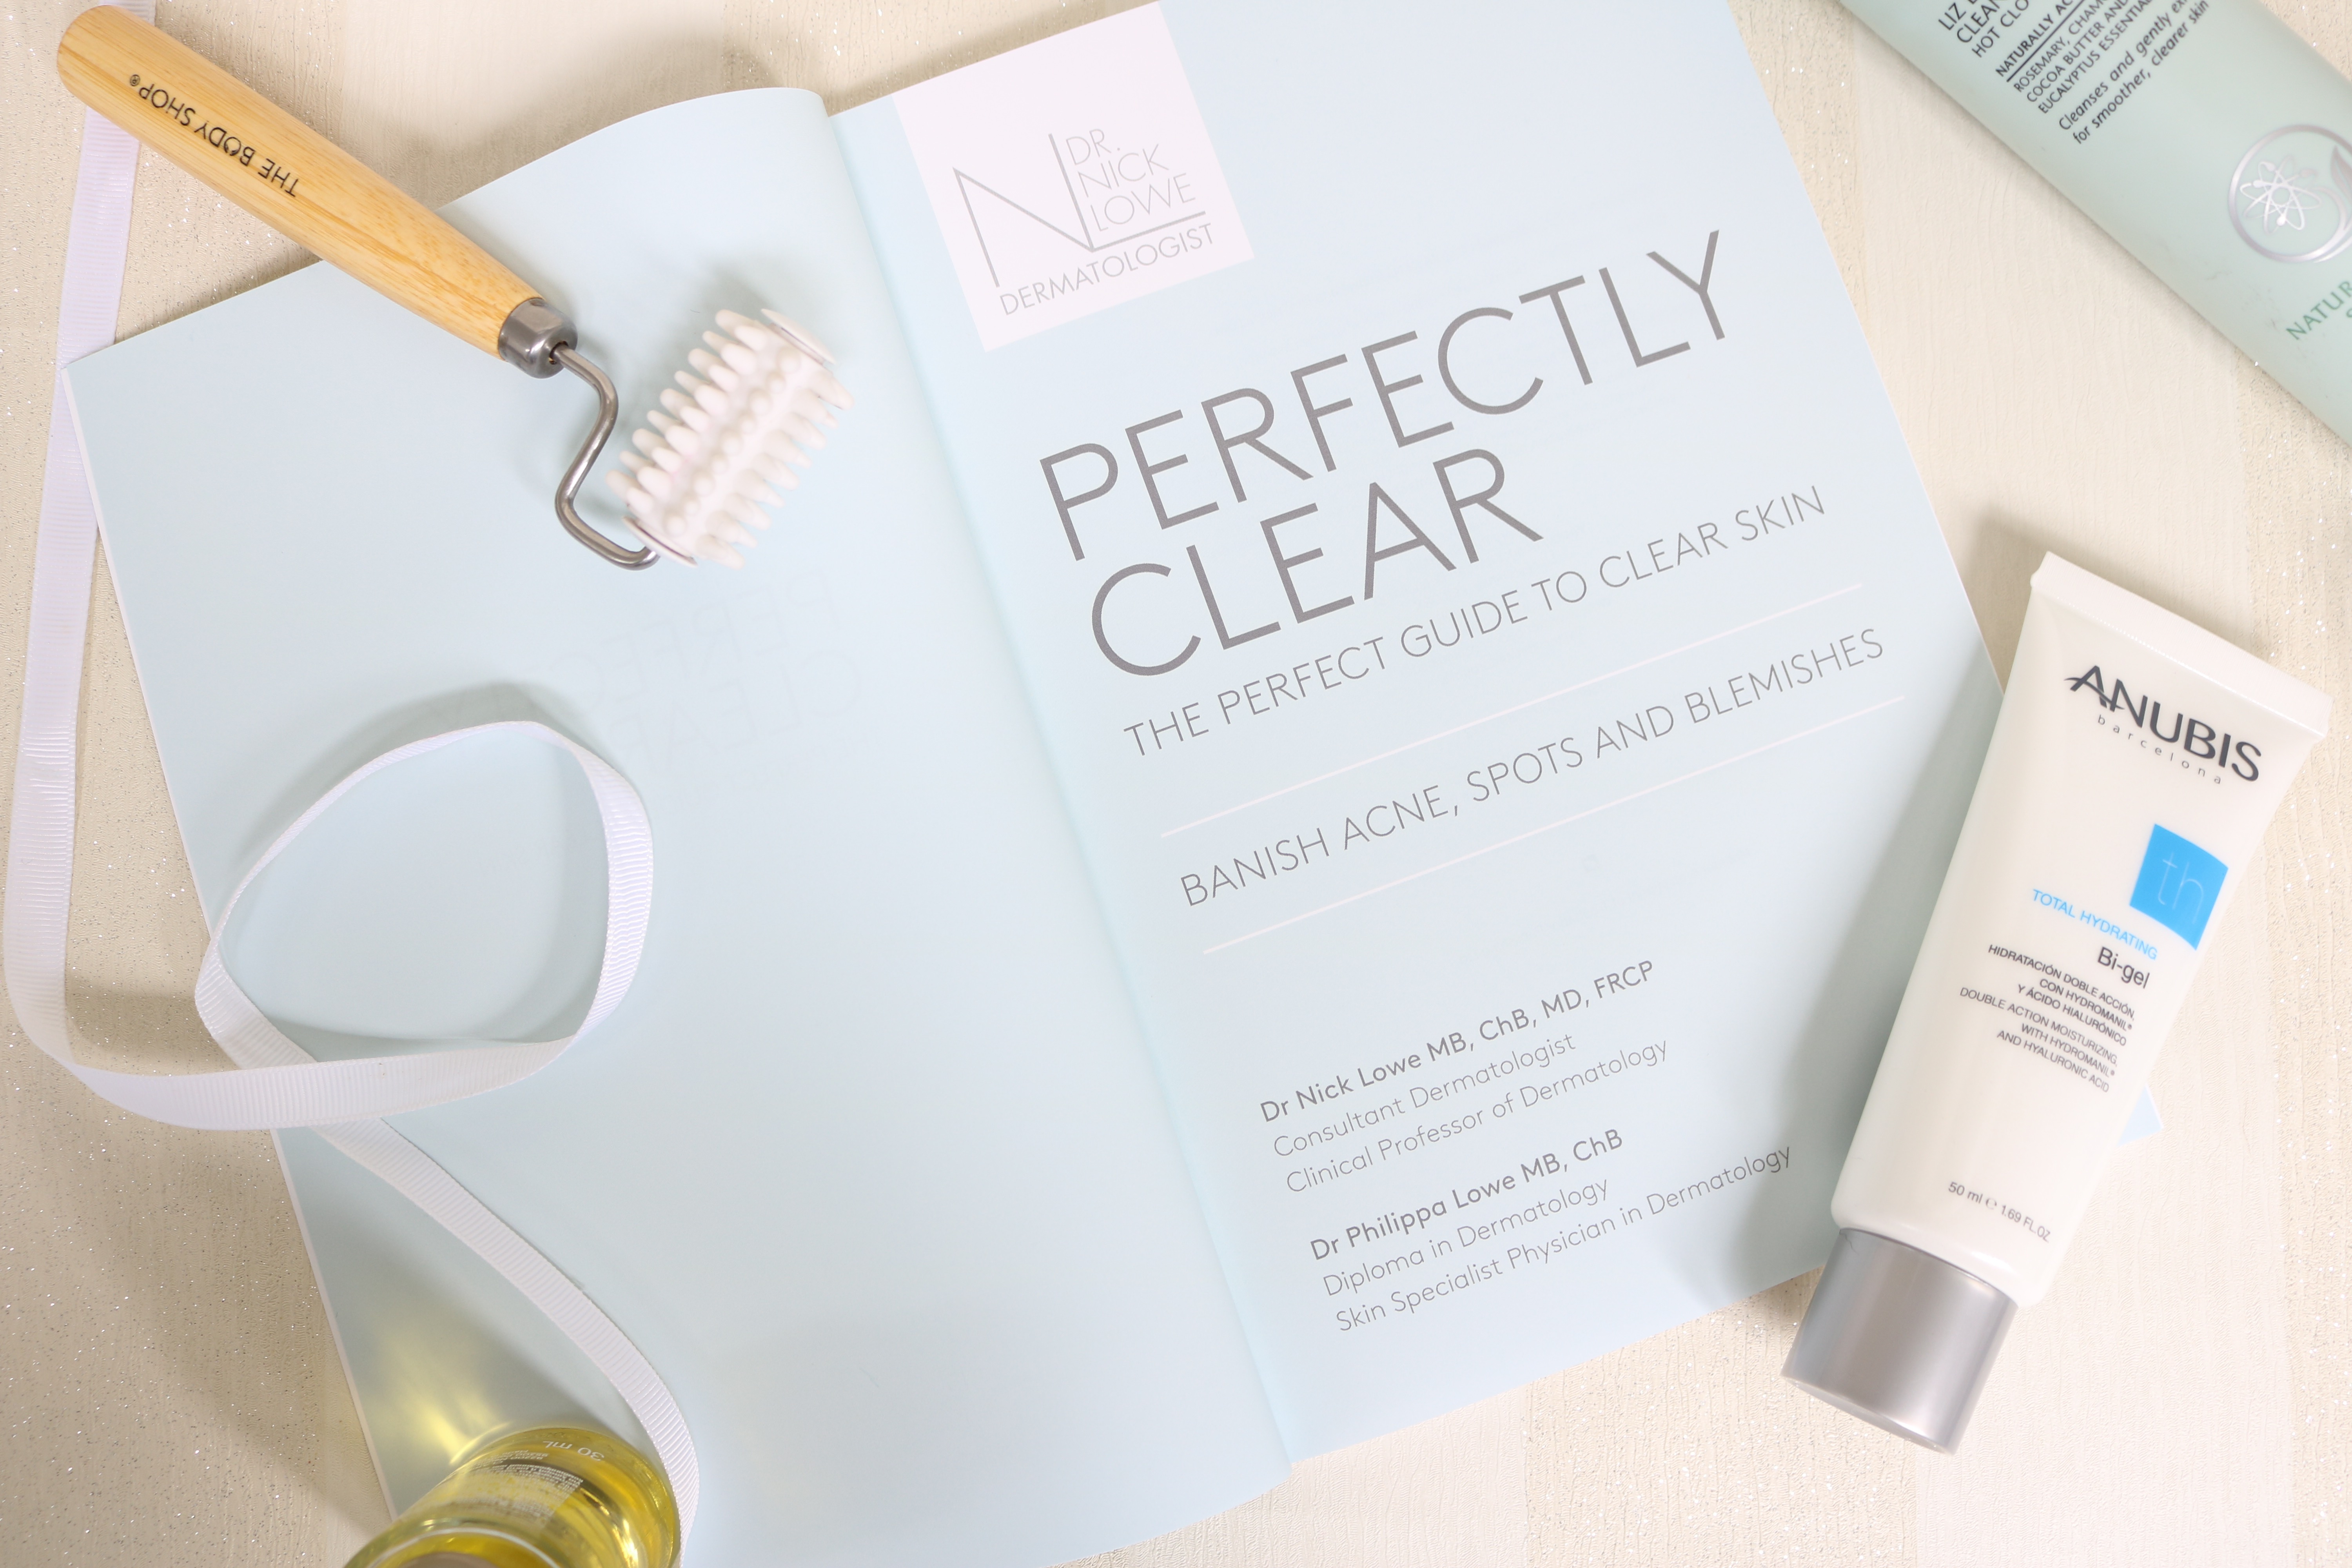 Perfectly Clear - The Perfect Guide to Clear Skin by Dr Nick & Phillipa Lowe, Banish Acne, Spots and Blemishes